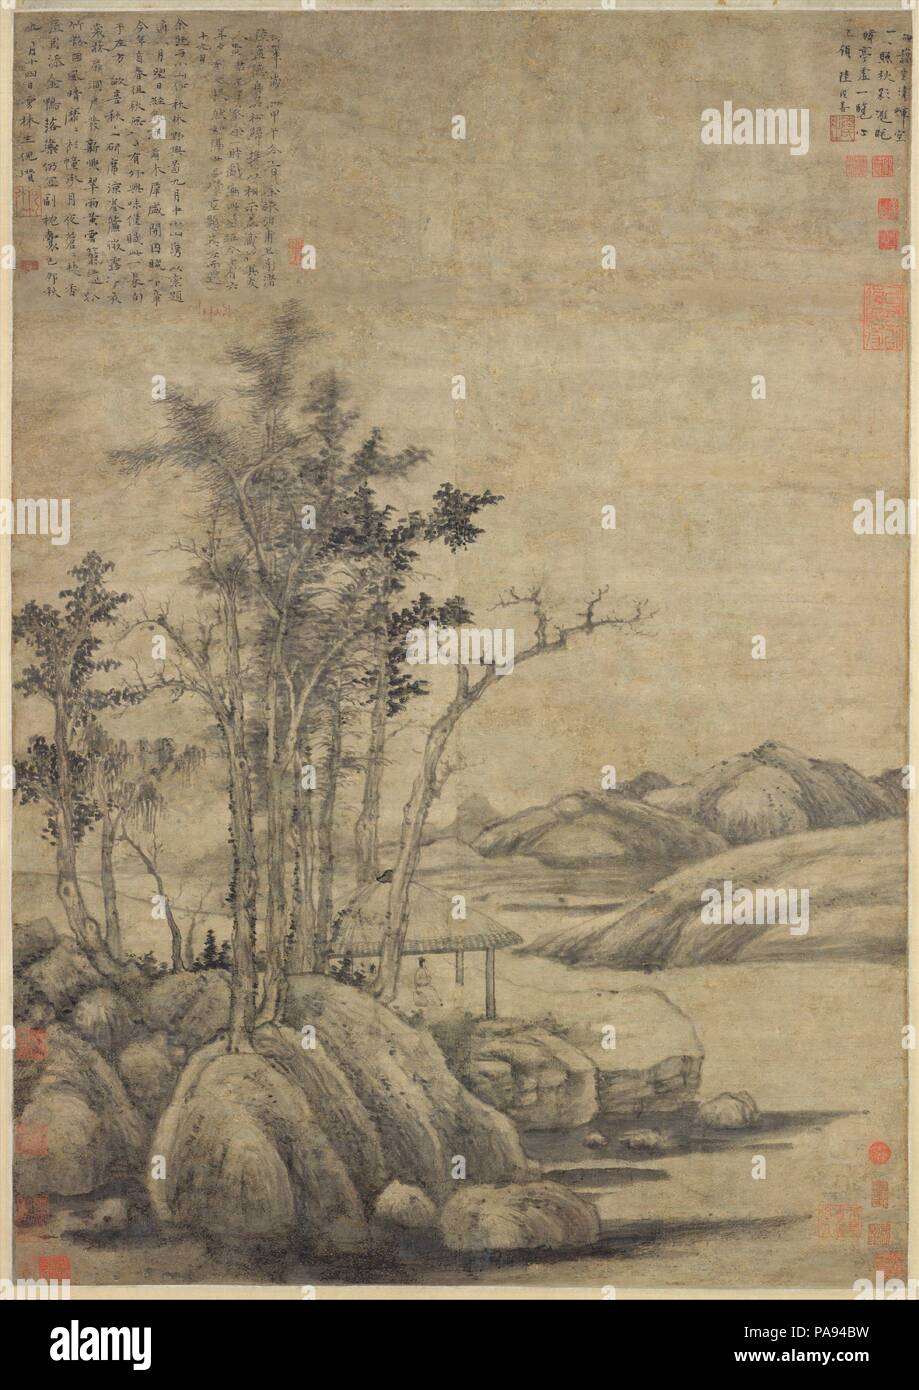 Enjoying the Wilderness in an Autumn Grove. Artist: Ni Zan (Chinese, 1306-1374). Culture: China. Dimensions: Image: 38 5/8 x 27 1/8 in. (98.1 x 68.9 cm)  Overall with mounting: 106 7/8 x 35 7/8 in. (271.5 x 91.1 cm)  Overall with knobs: 106 7/8 x 40 in. (271.5 x 101.6 cm). Date: dated 1339.  Until the early 1340s, Ni Zan lived the life of a wealthy dilettante, spending his time among the precious books, antiques, and flowers of his Pure and Secluded Pavilion. His painting style at the time, as seen here, exhibits a studied archaism in which his interest in descriptive detail is at odds with hi Stock Photo